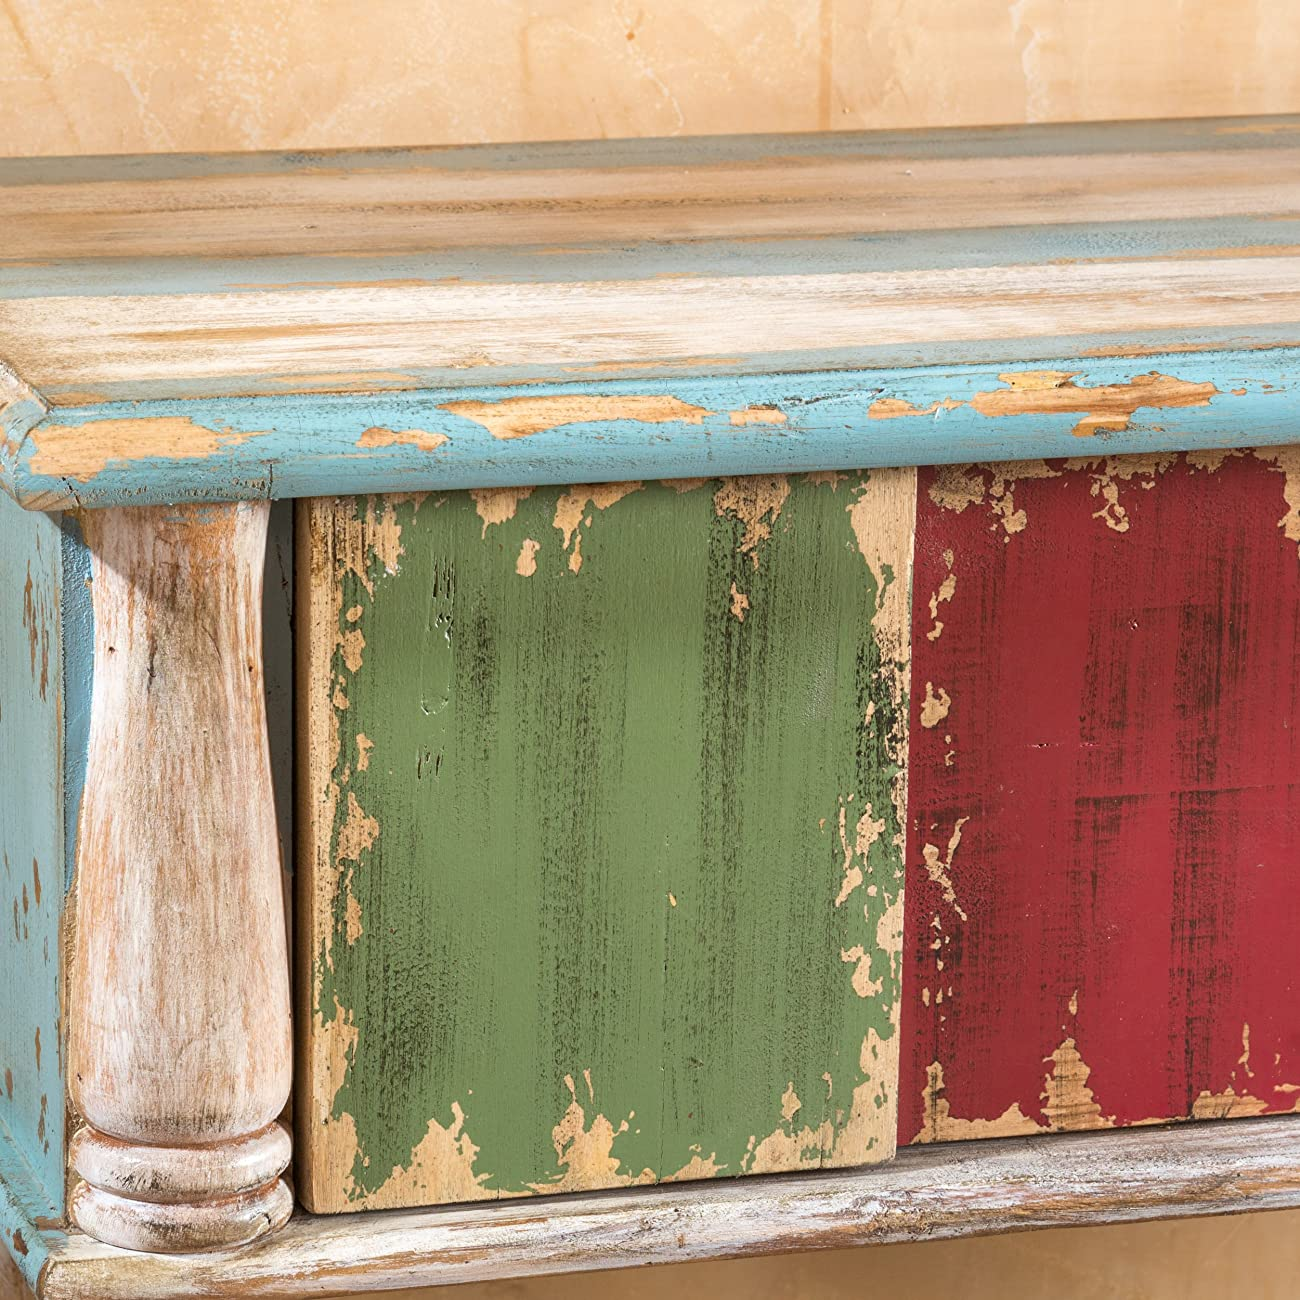 Leo Solid Wood 2 Drawer Console Table in Antique Weathered Multi-Color Style 1